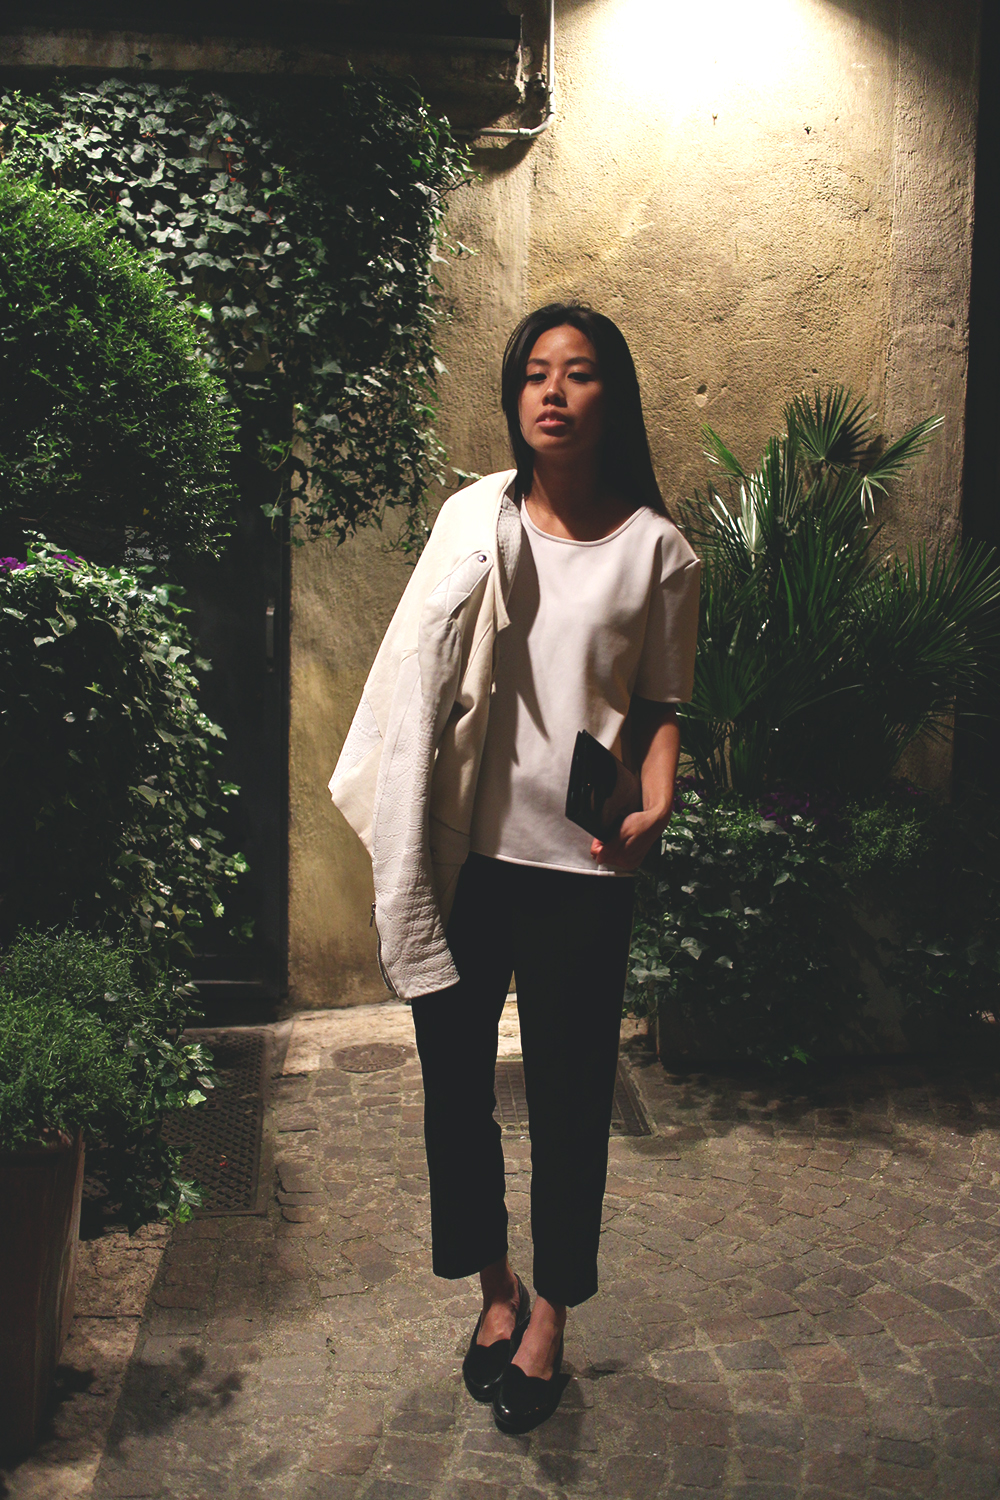 IHEARTALICE.DE – Fashion & Travel-Blog by Alice M. Huynh from Germany: Verona/Italy Travel & Food Diary –  All Black Everything Look wearing White Neopren Shirt & Straight Trousers, Leather Loafers